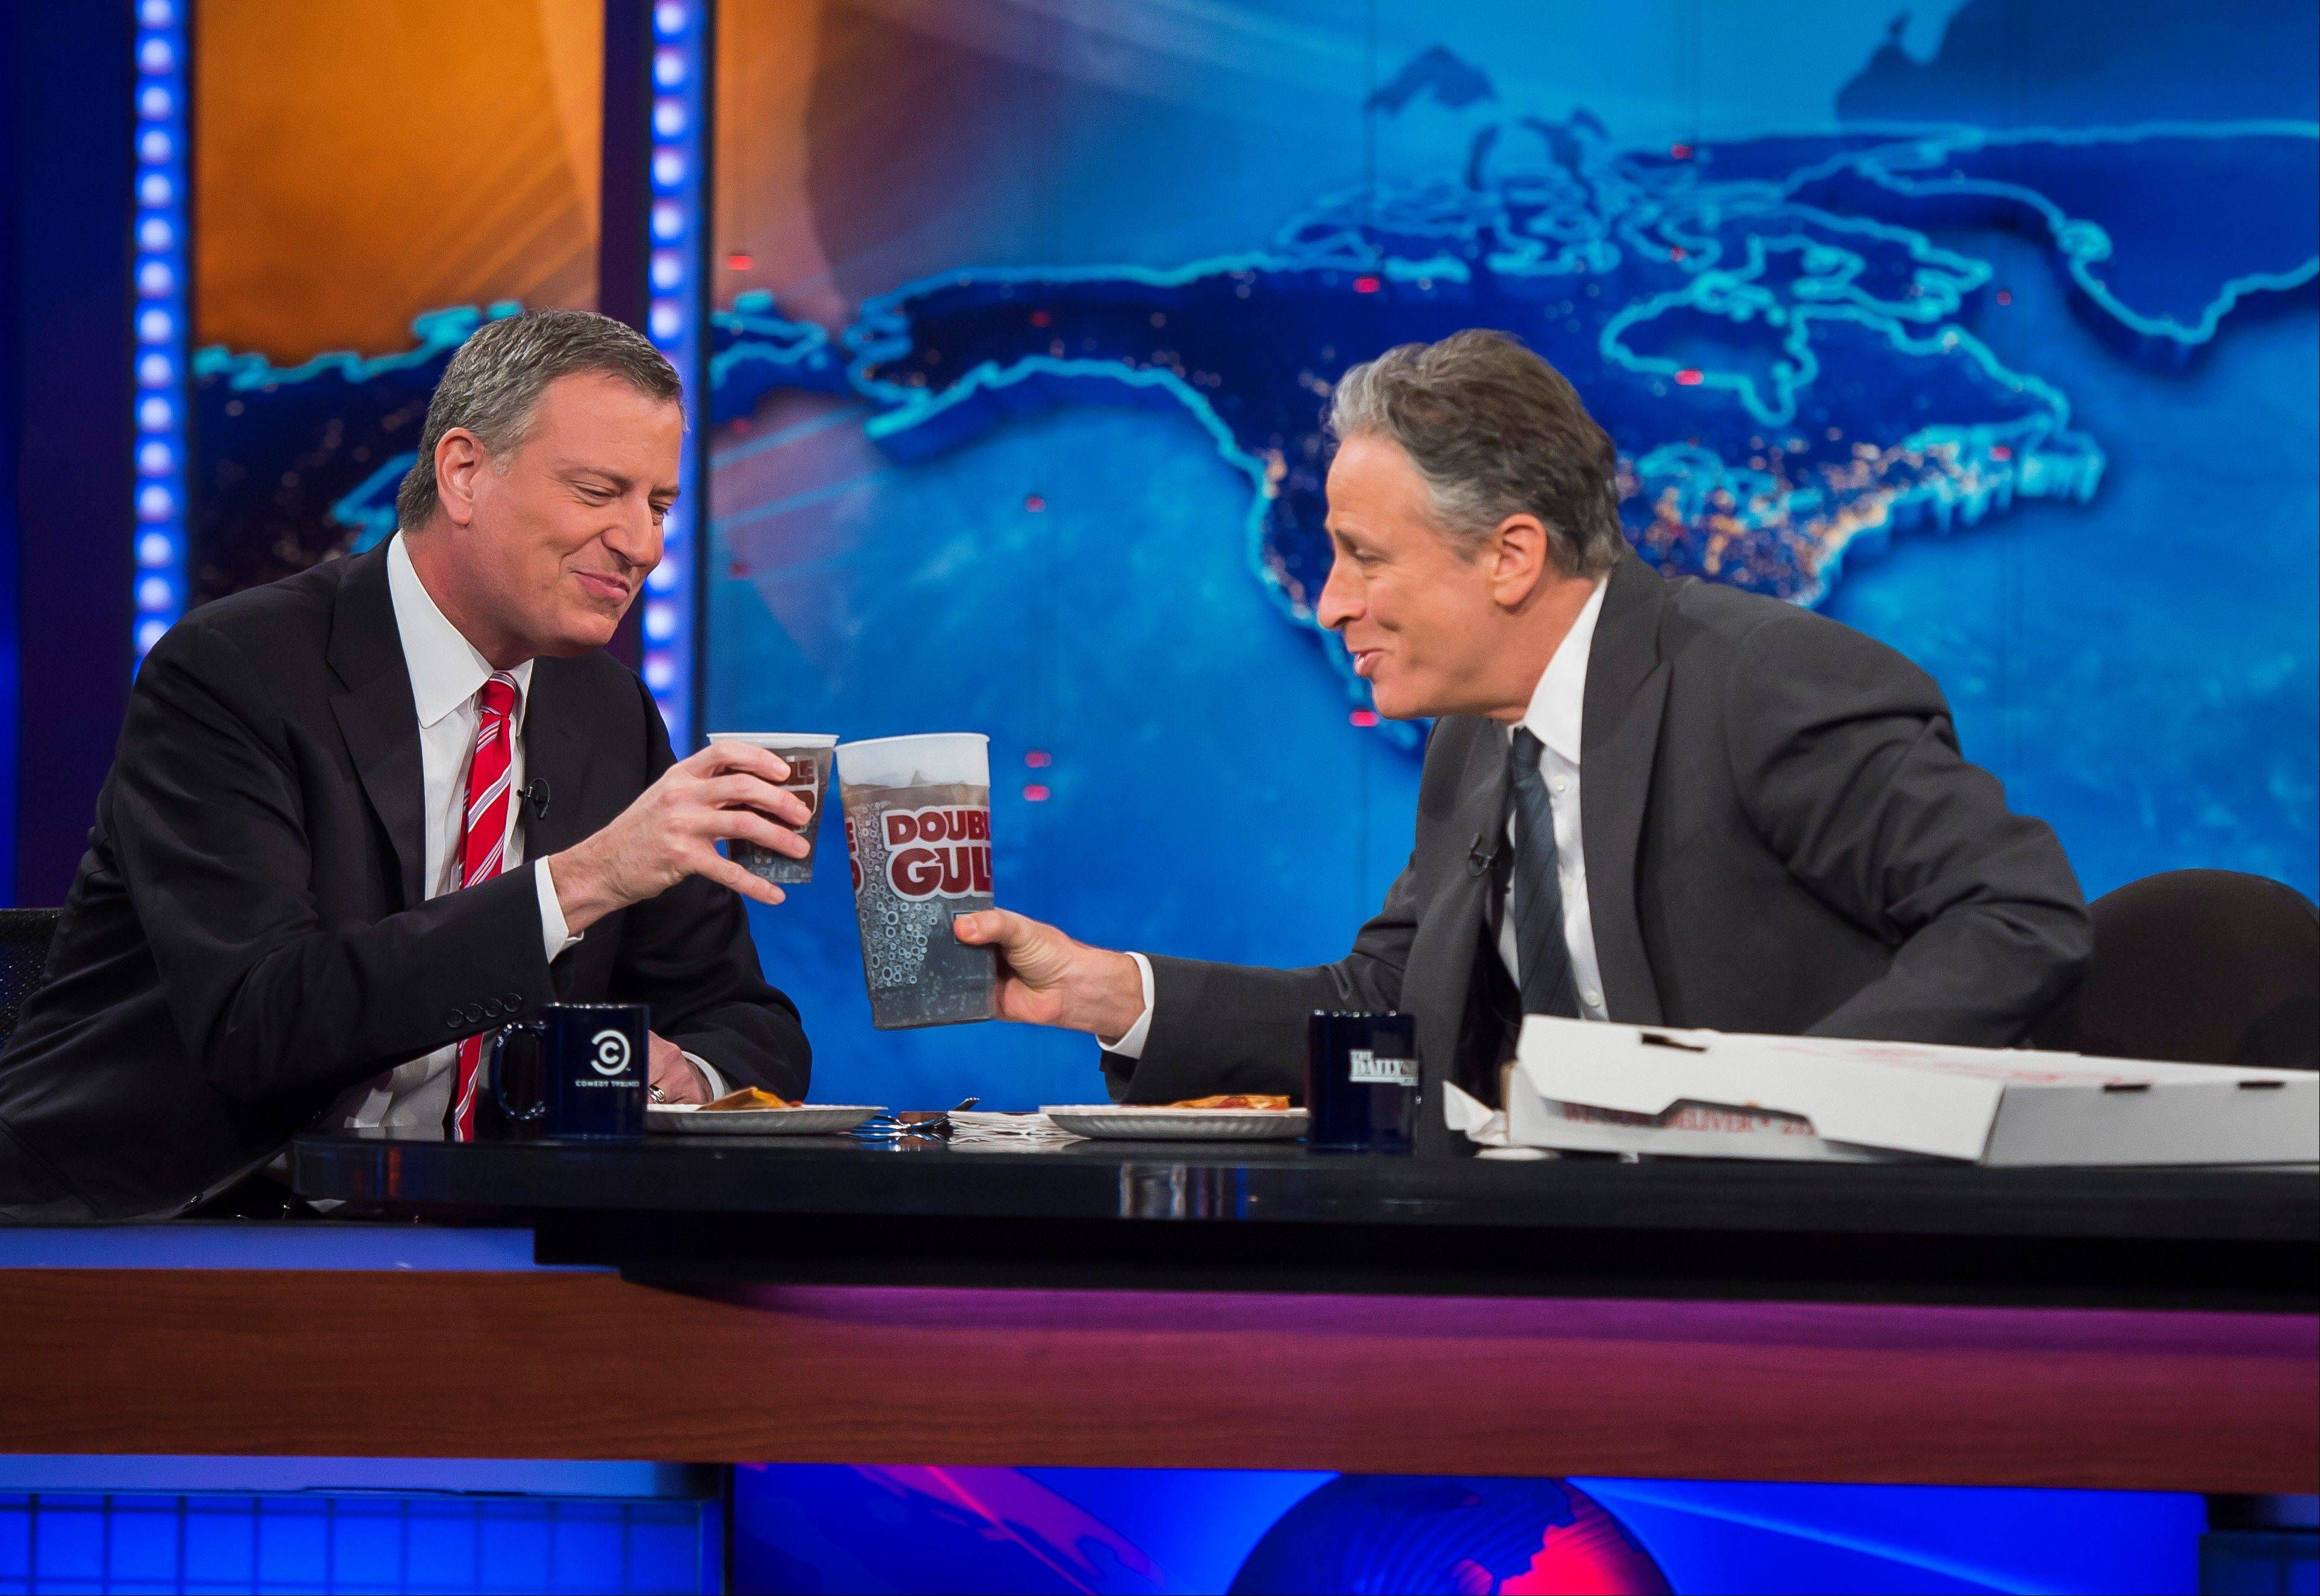 New York Mayor Bill de Blasio, left, shares pizza and soda with host Jon Stewart on Comedy Central�s �The Daily Show� on Monday in New York.